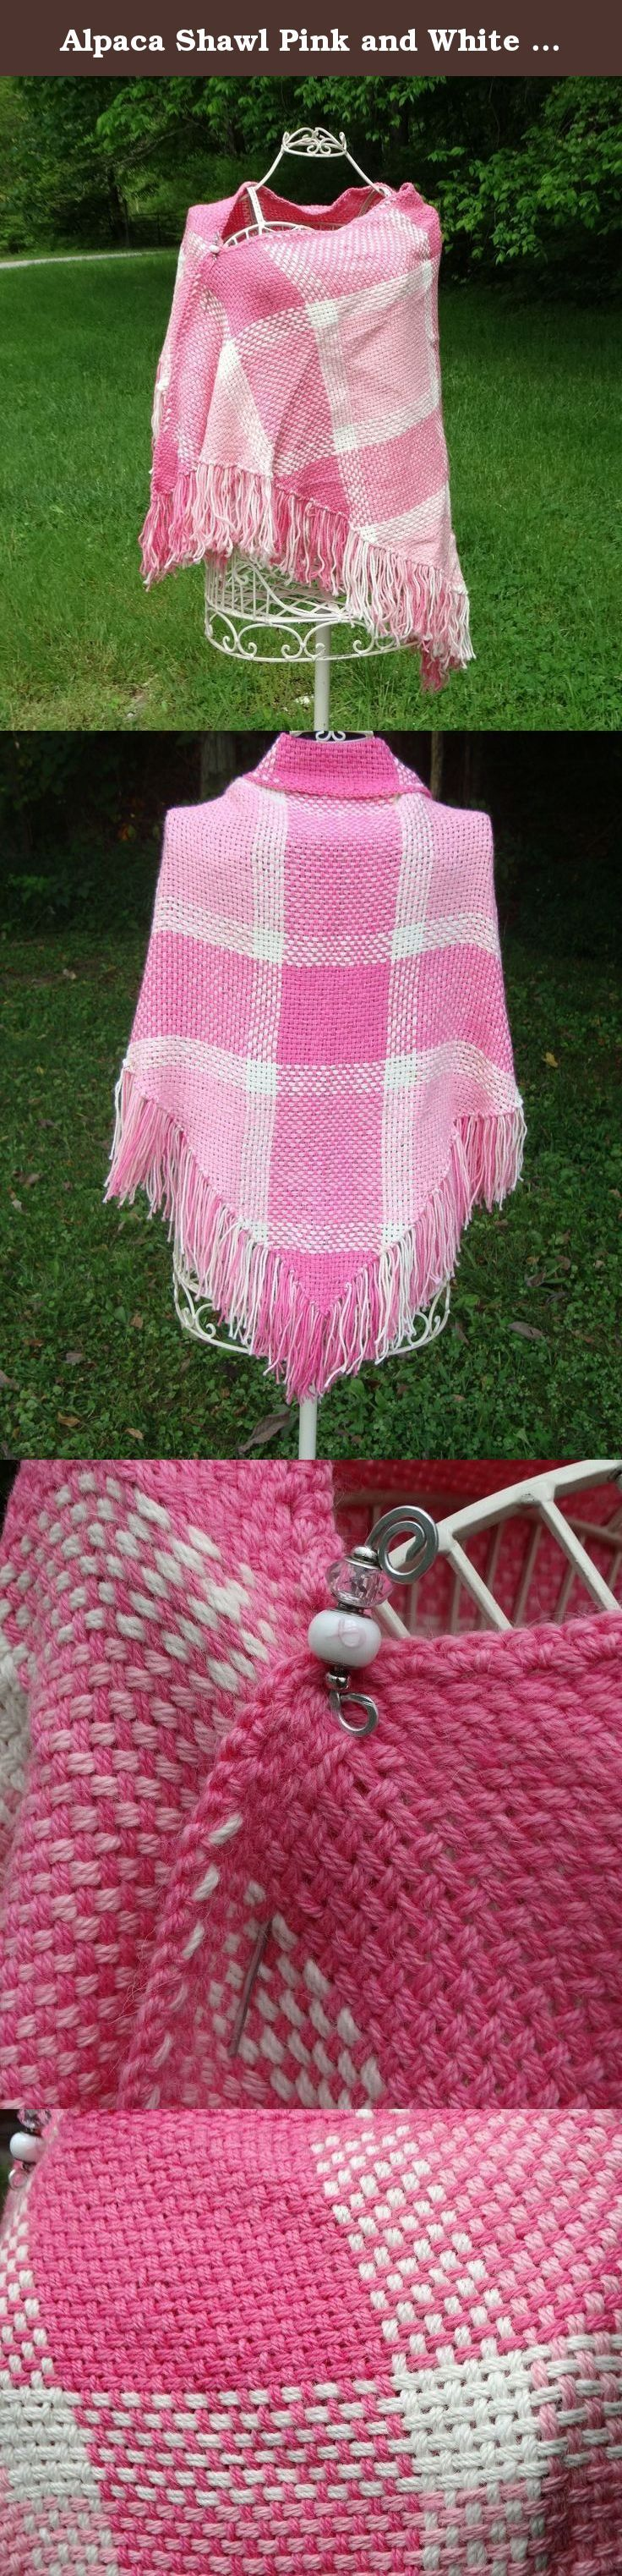 Alpaca Shawl Pink and White Handwoven. This bright pink and white shawl was hand woven using a double strand of 100% alpaca yarn. The Pinks are from a Limited Edition Yarn called Pinks with Purpose. A portion of the sales of this yarn was donated to Cancer Research. The white yarn is from our own farm. All the yarn was spun by the same mill and then woven on my triangle loom. The design is my own. This shawl is a one of a kind and unique item. It's warm and soft and very PINK !!! Every…